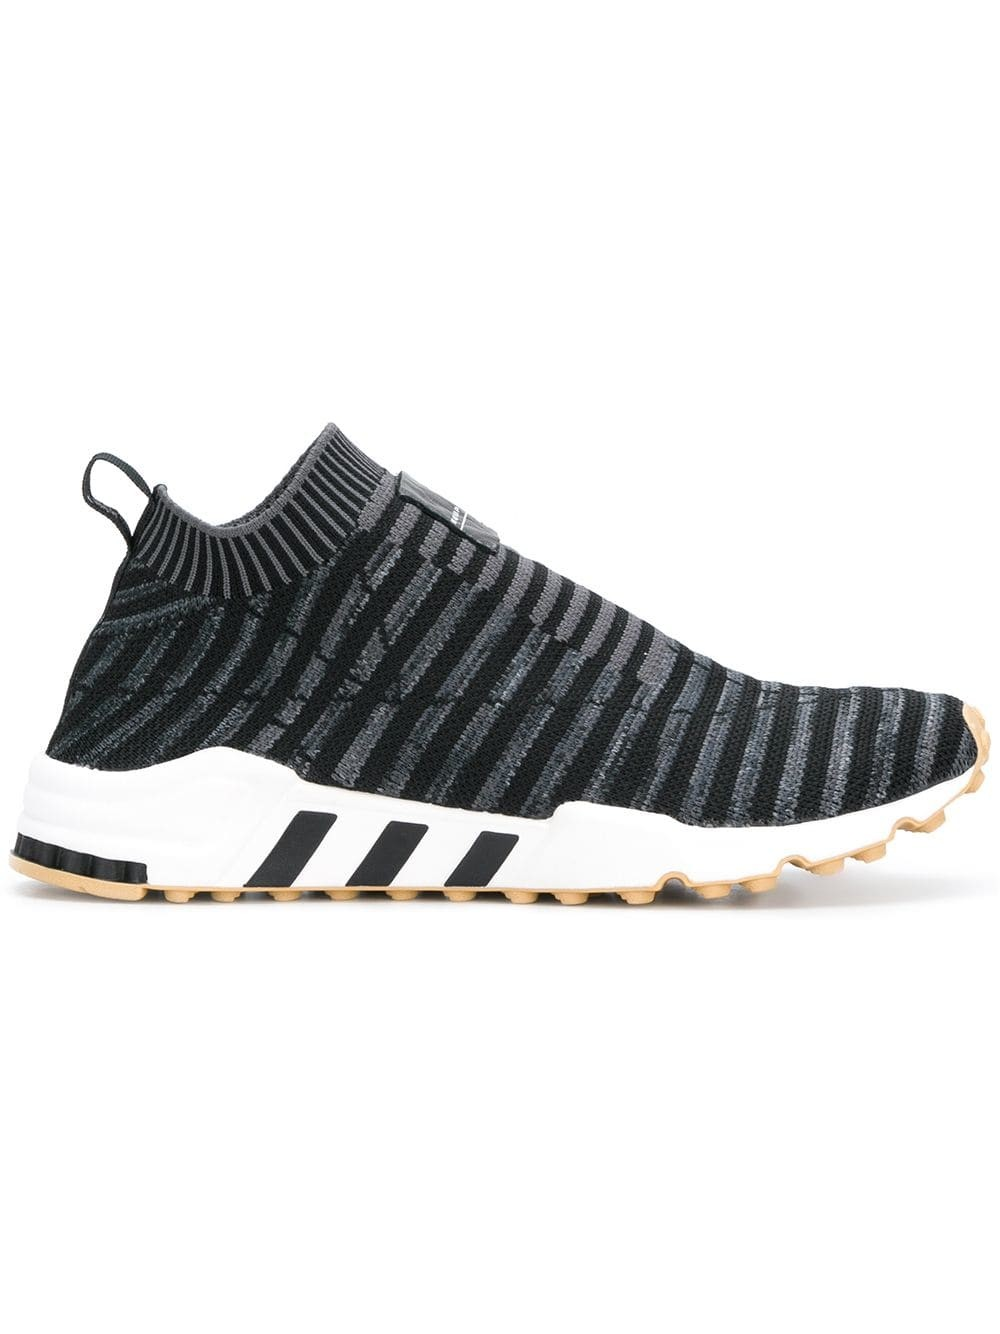 Adidas Originals Equipment Support SK PK Femme | B37536 | Noir